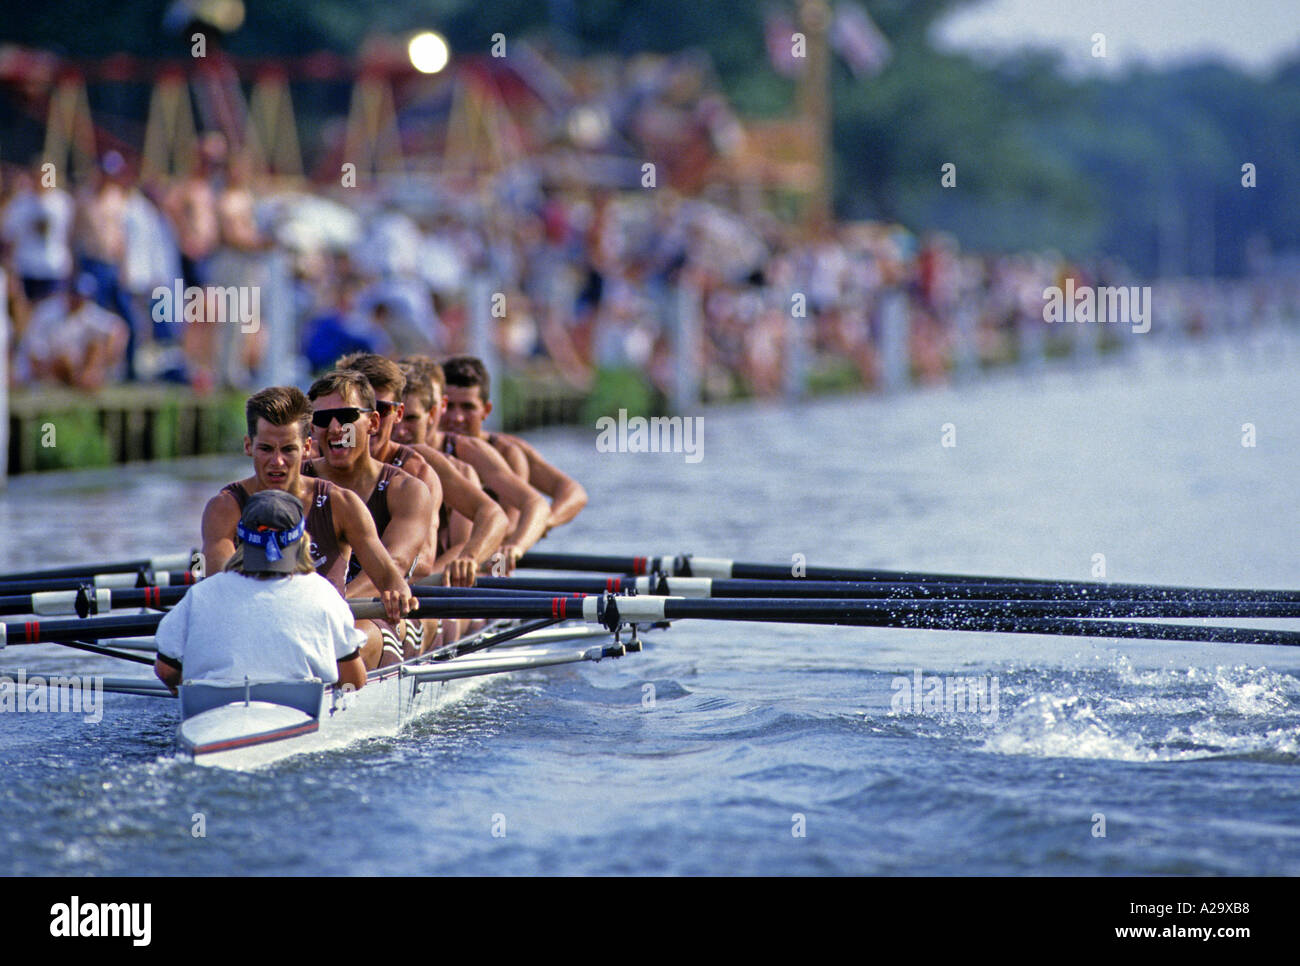 The crew of the coxed Eight from Brown University USA rowing in front of the crowd during a race at the Henley Royal Regatta - Stock Image